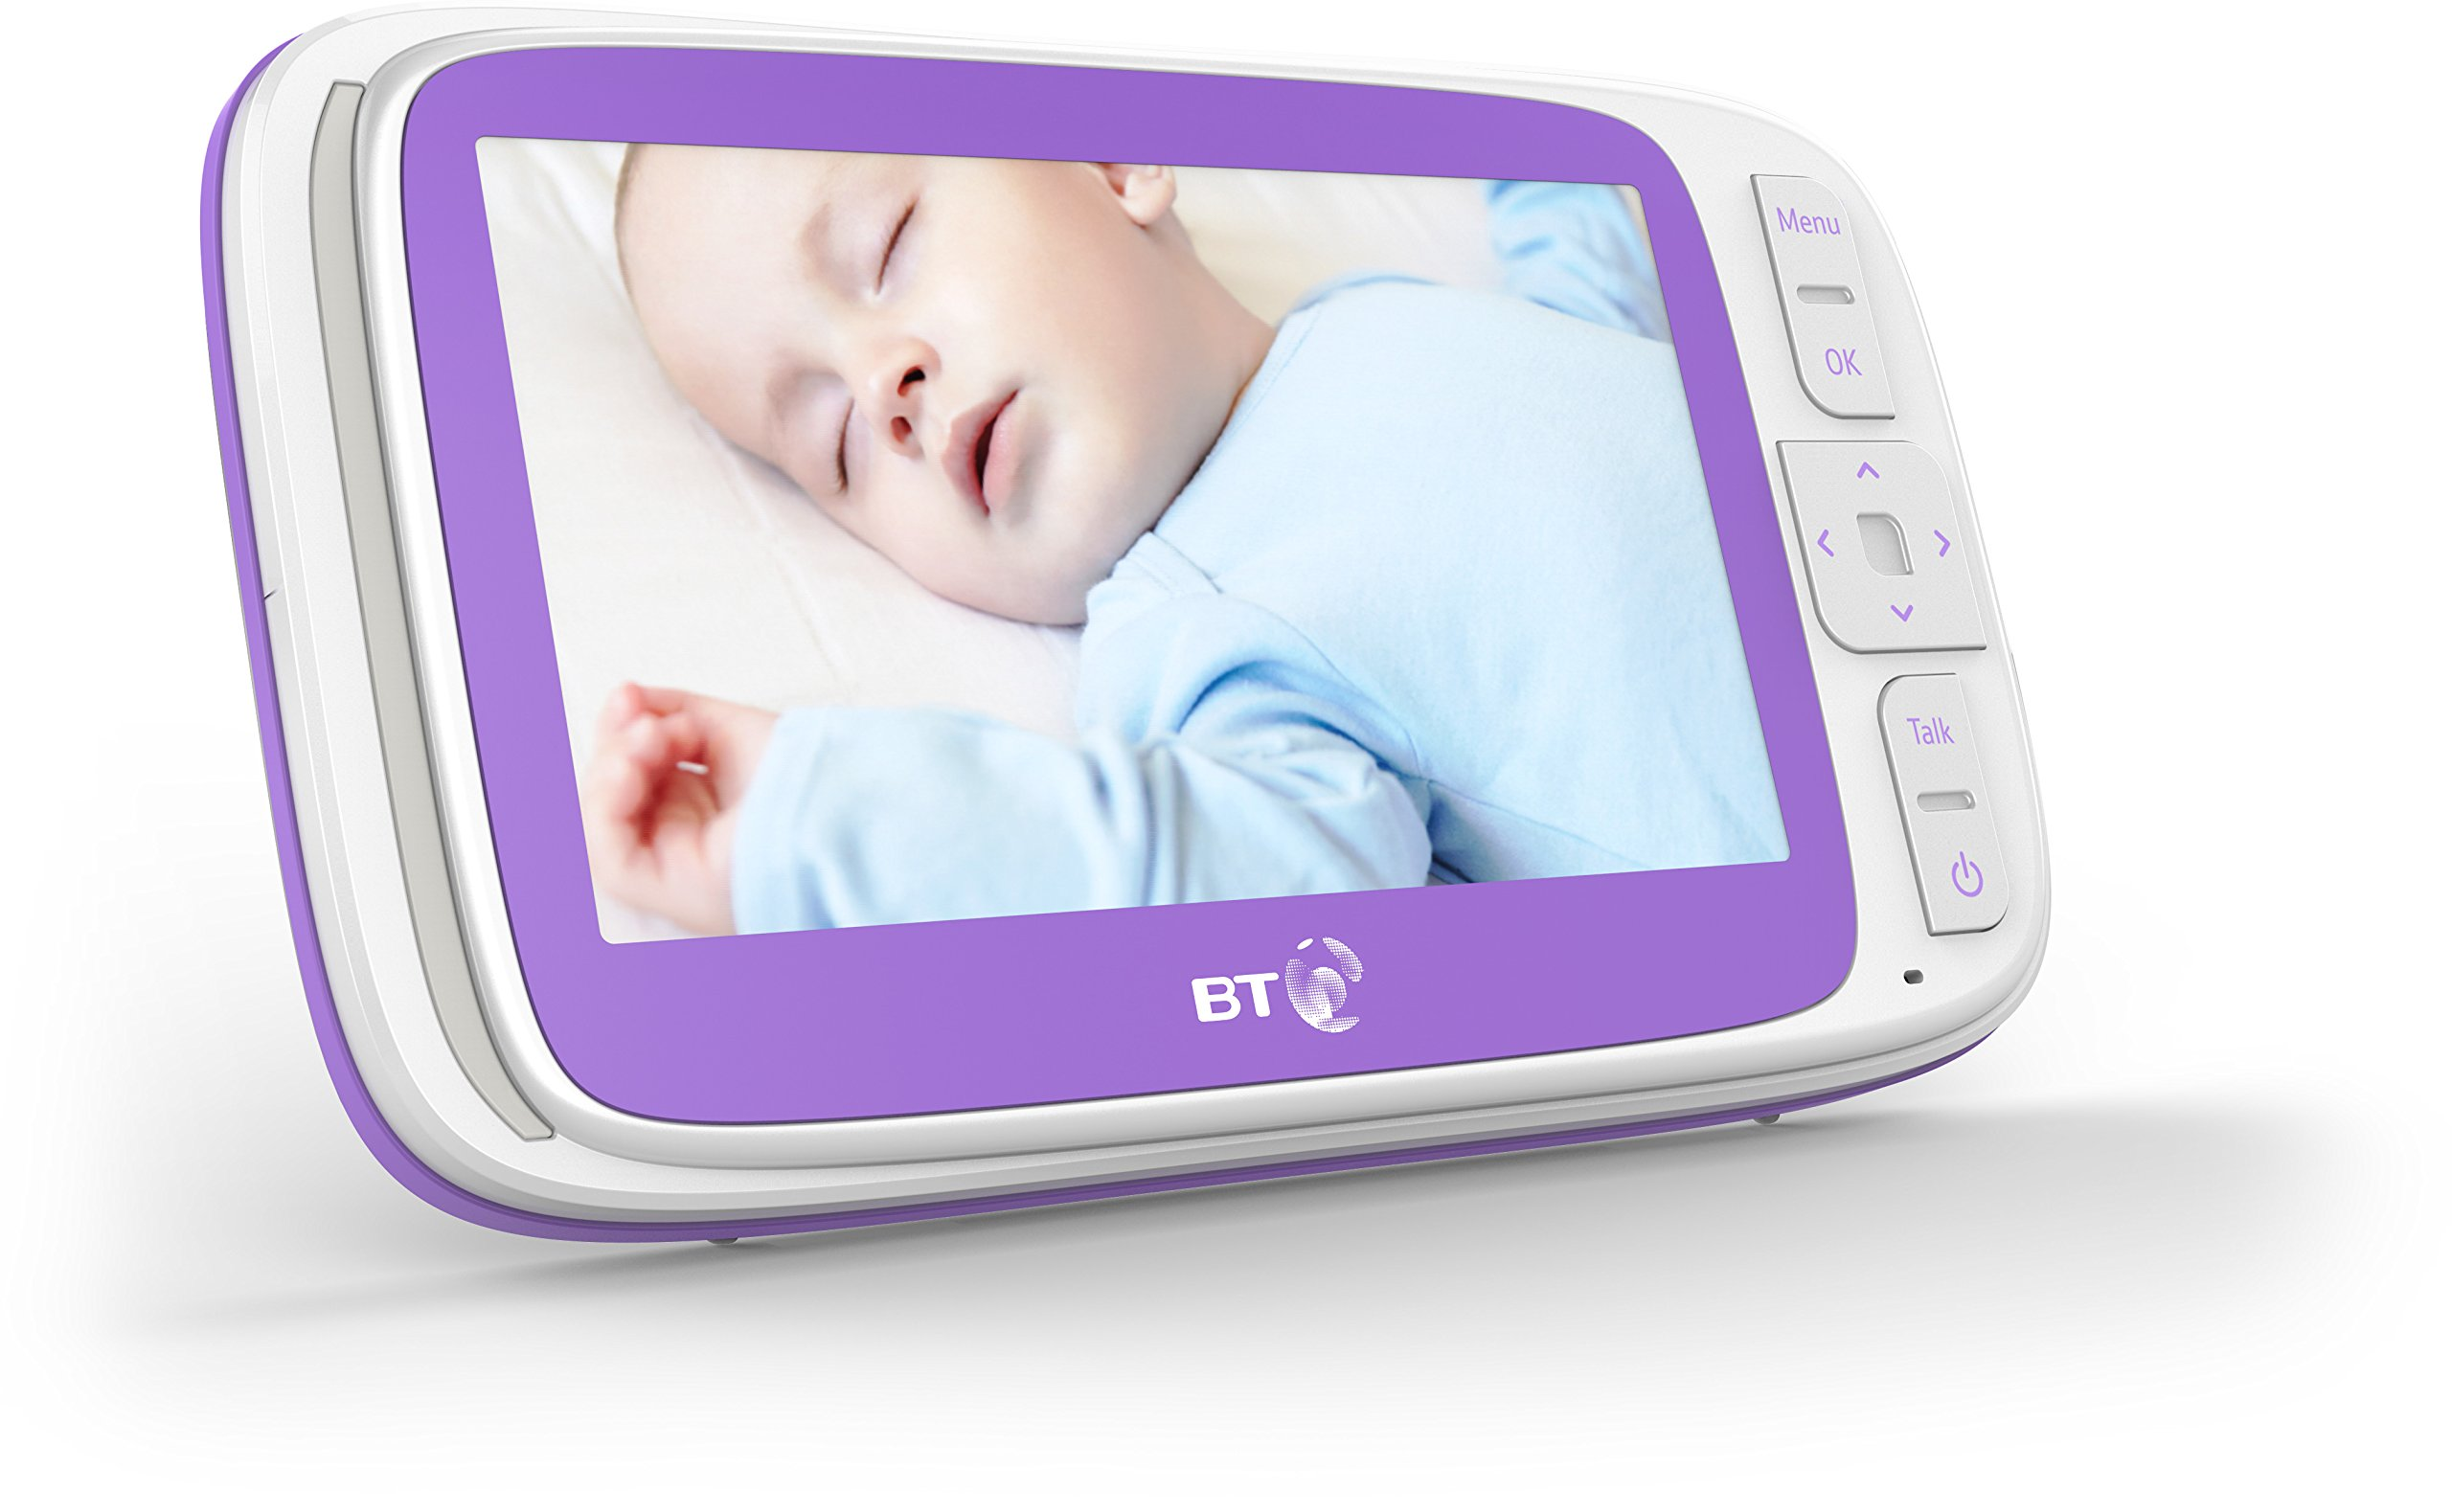 BT Video Baby Monitor 6000 BT 5 inch screen Temperature indication / 5 lullabies Remote control pan and tilt mechanism 2